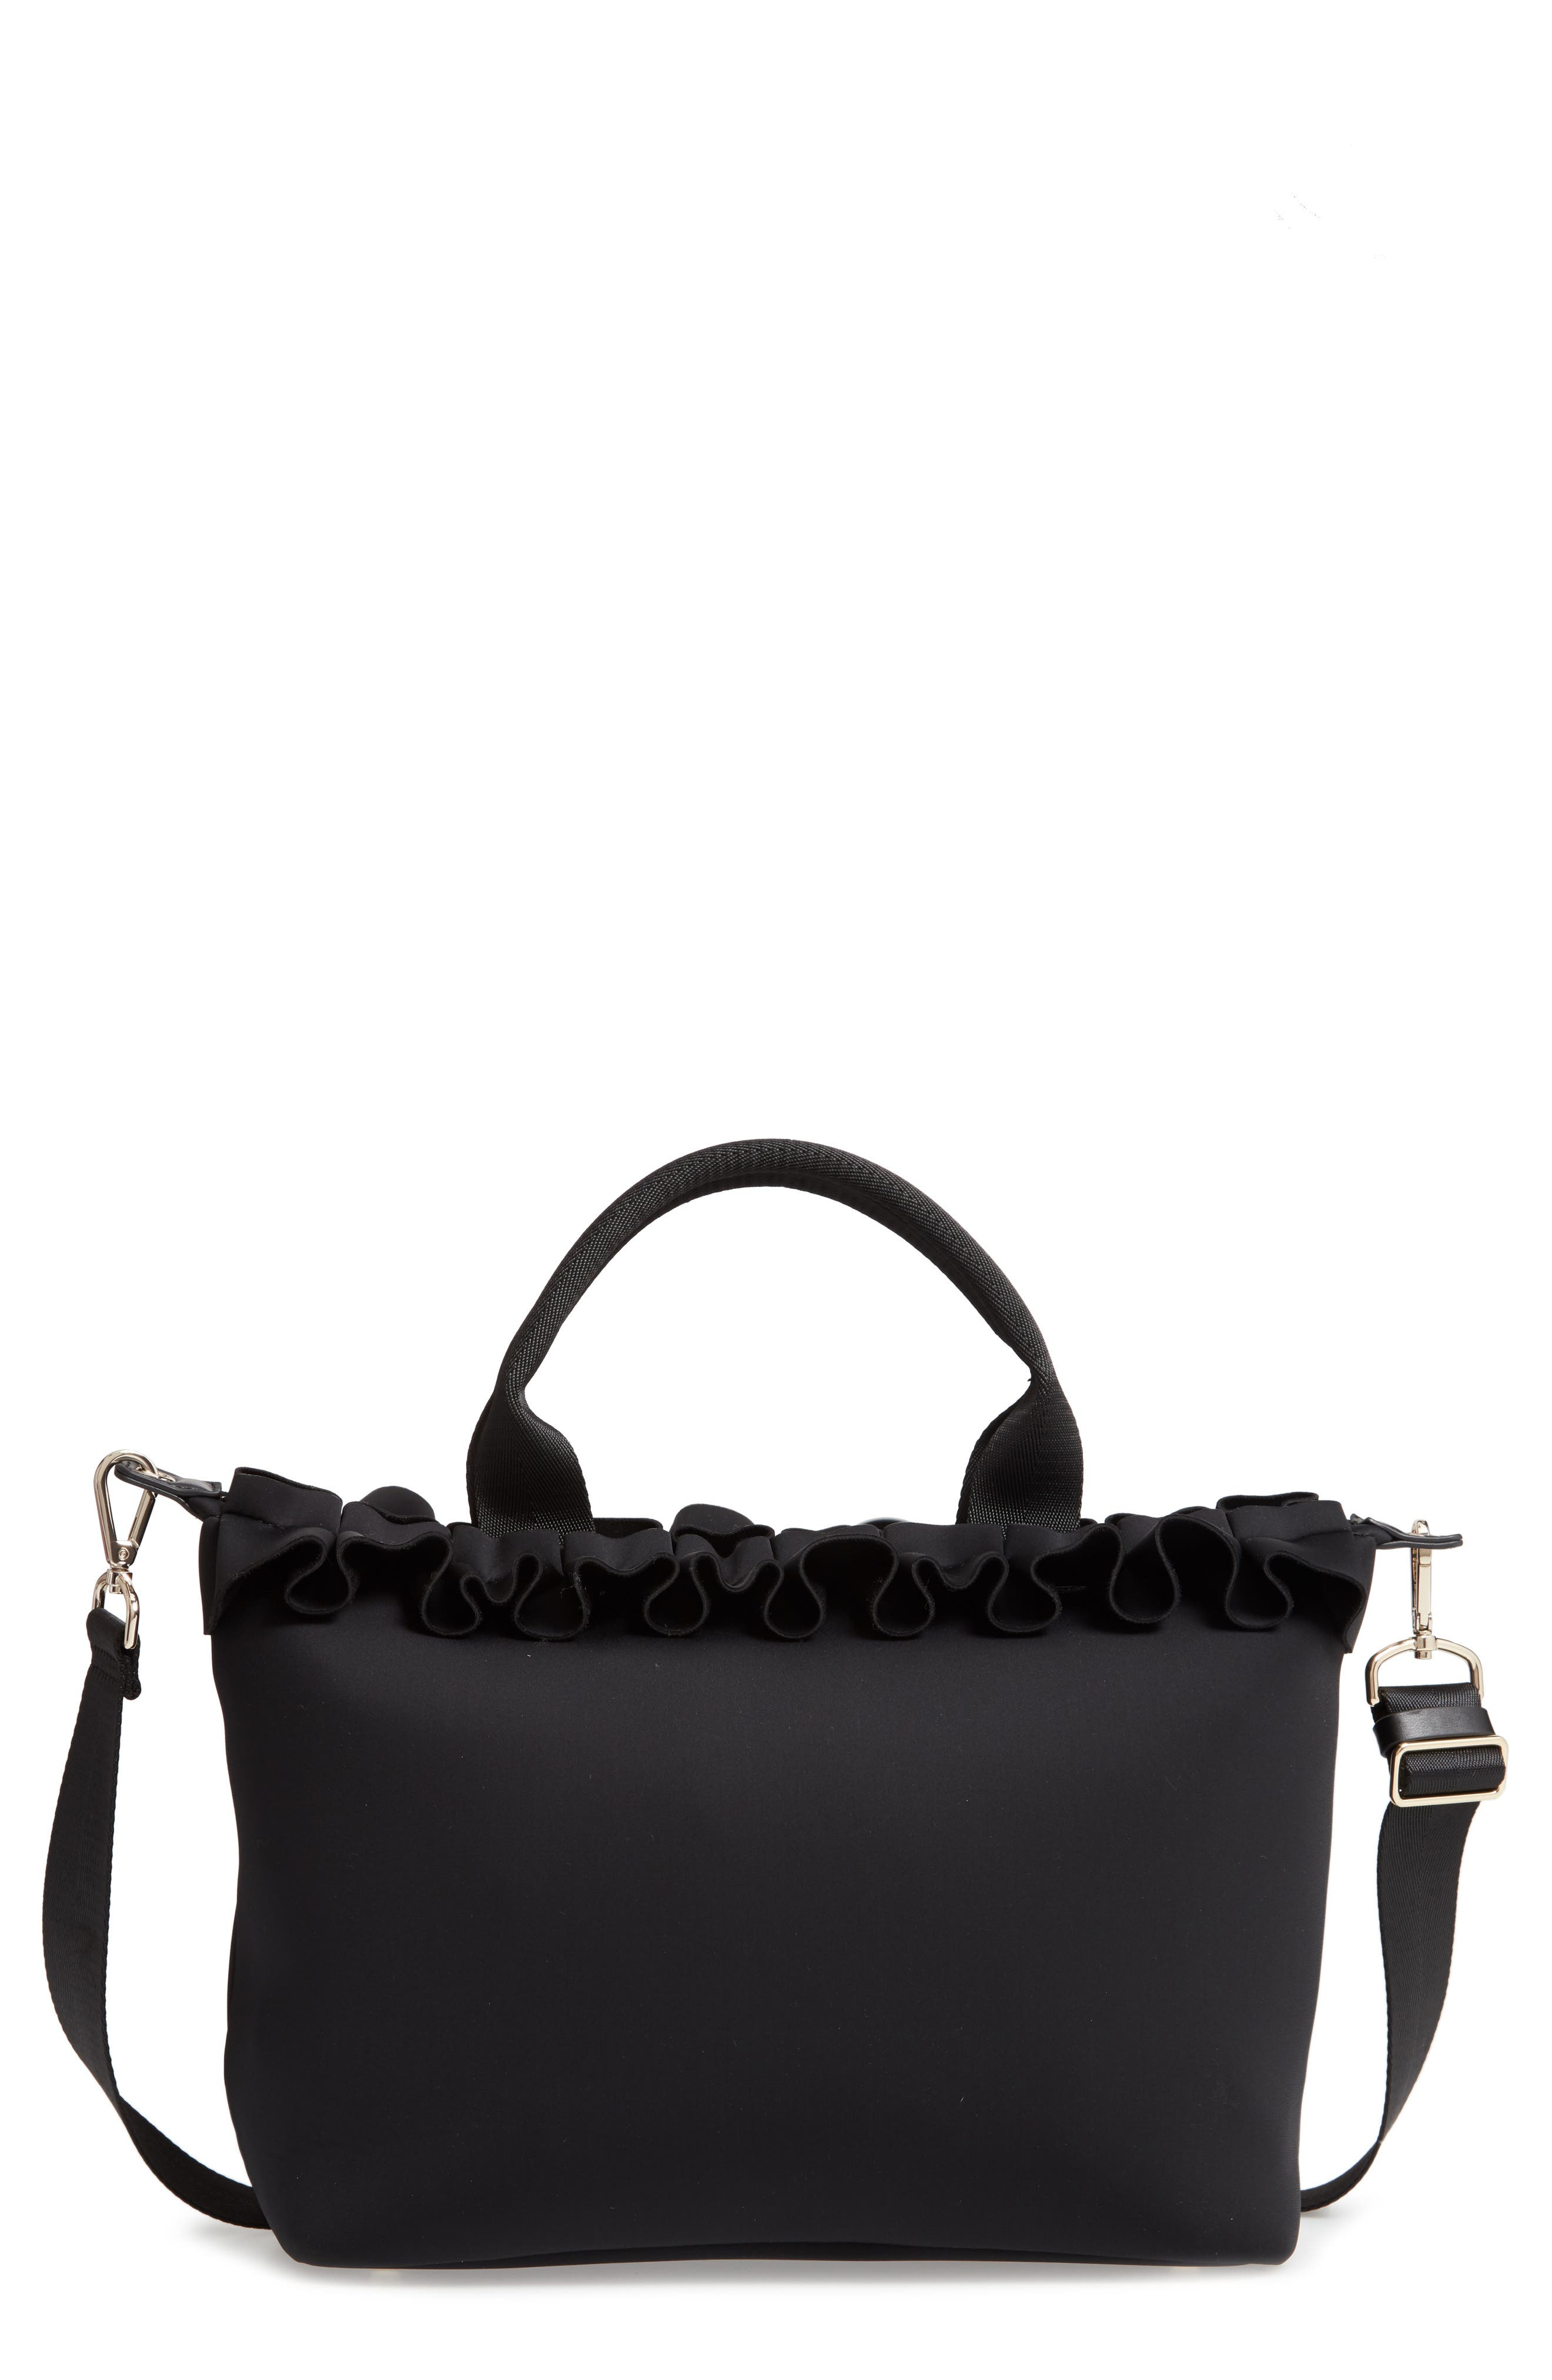 TED BAKER LONDON, Ryllee Ruffle Tote, Main thumbnail 1, color, 001